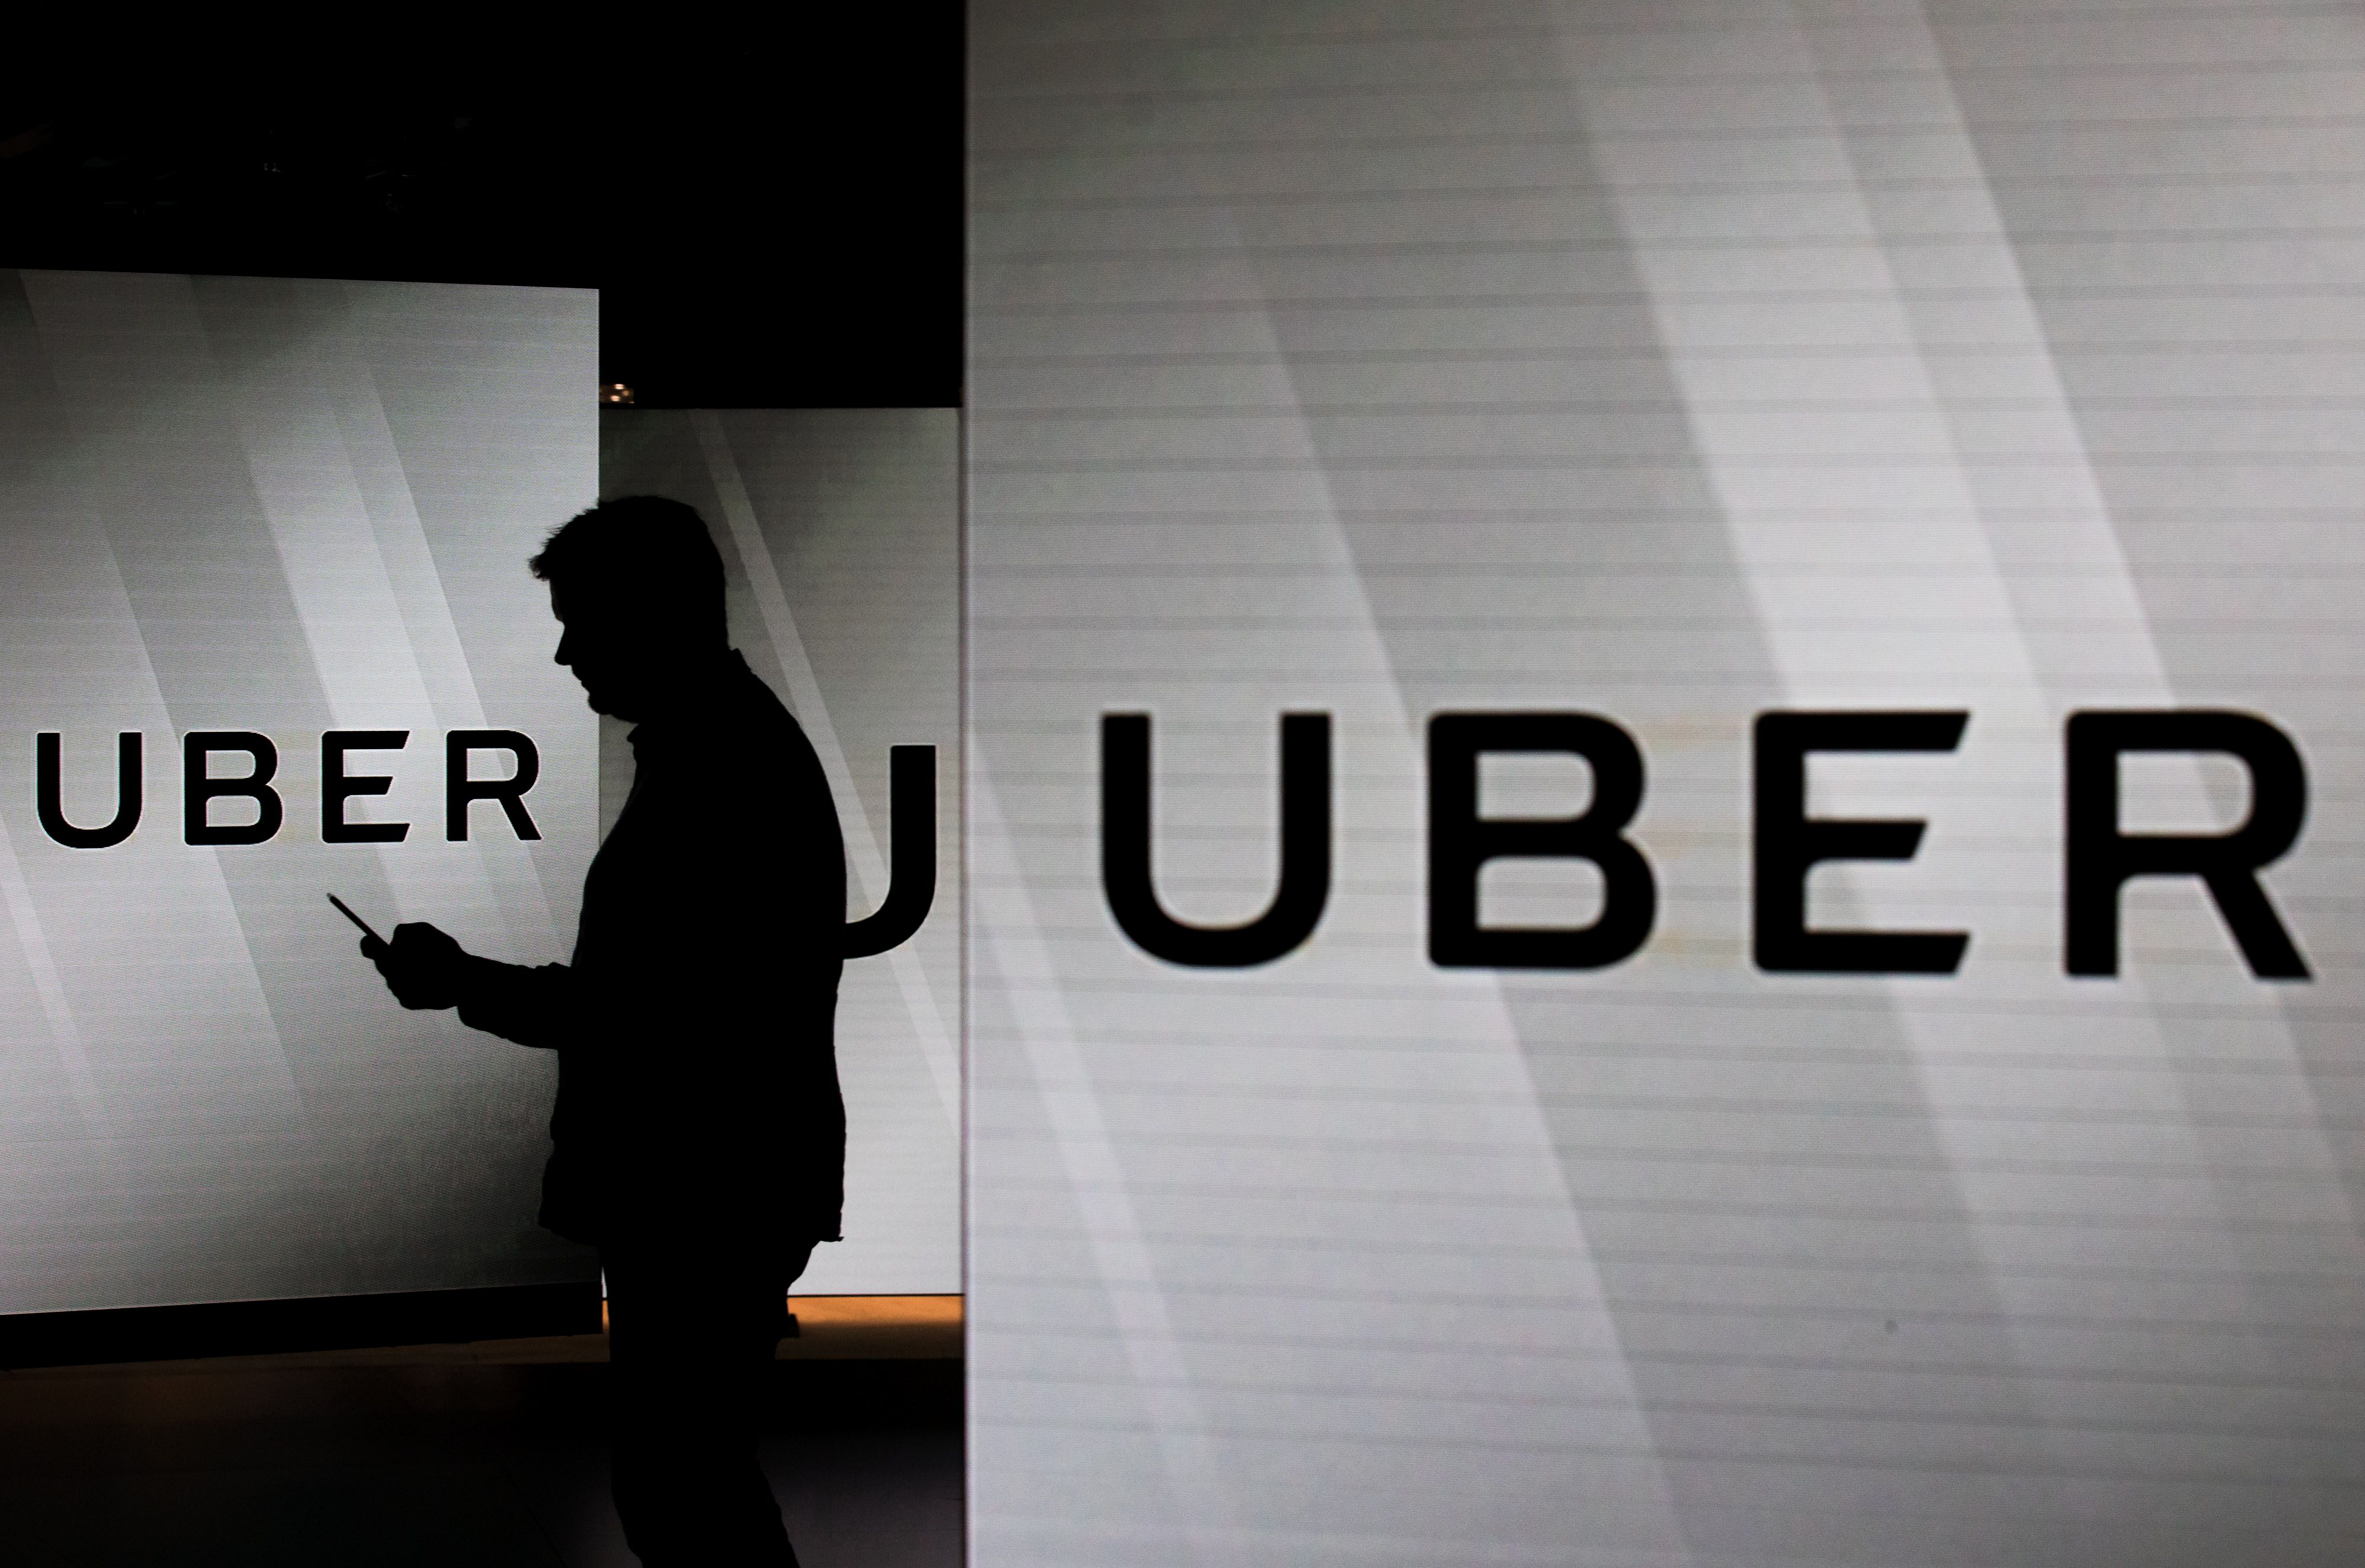 Uber shares will be overvalued the day they go public, growing number of skeptics say